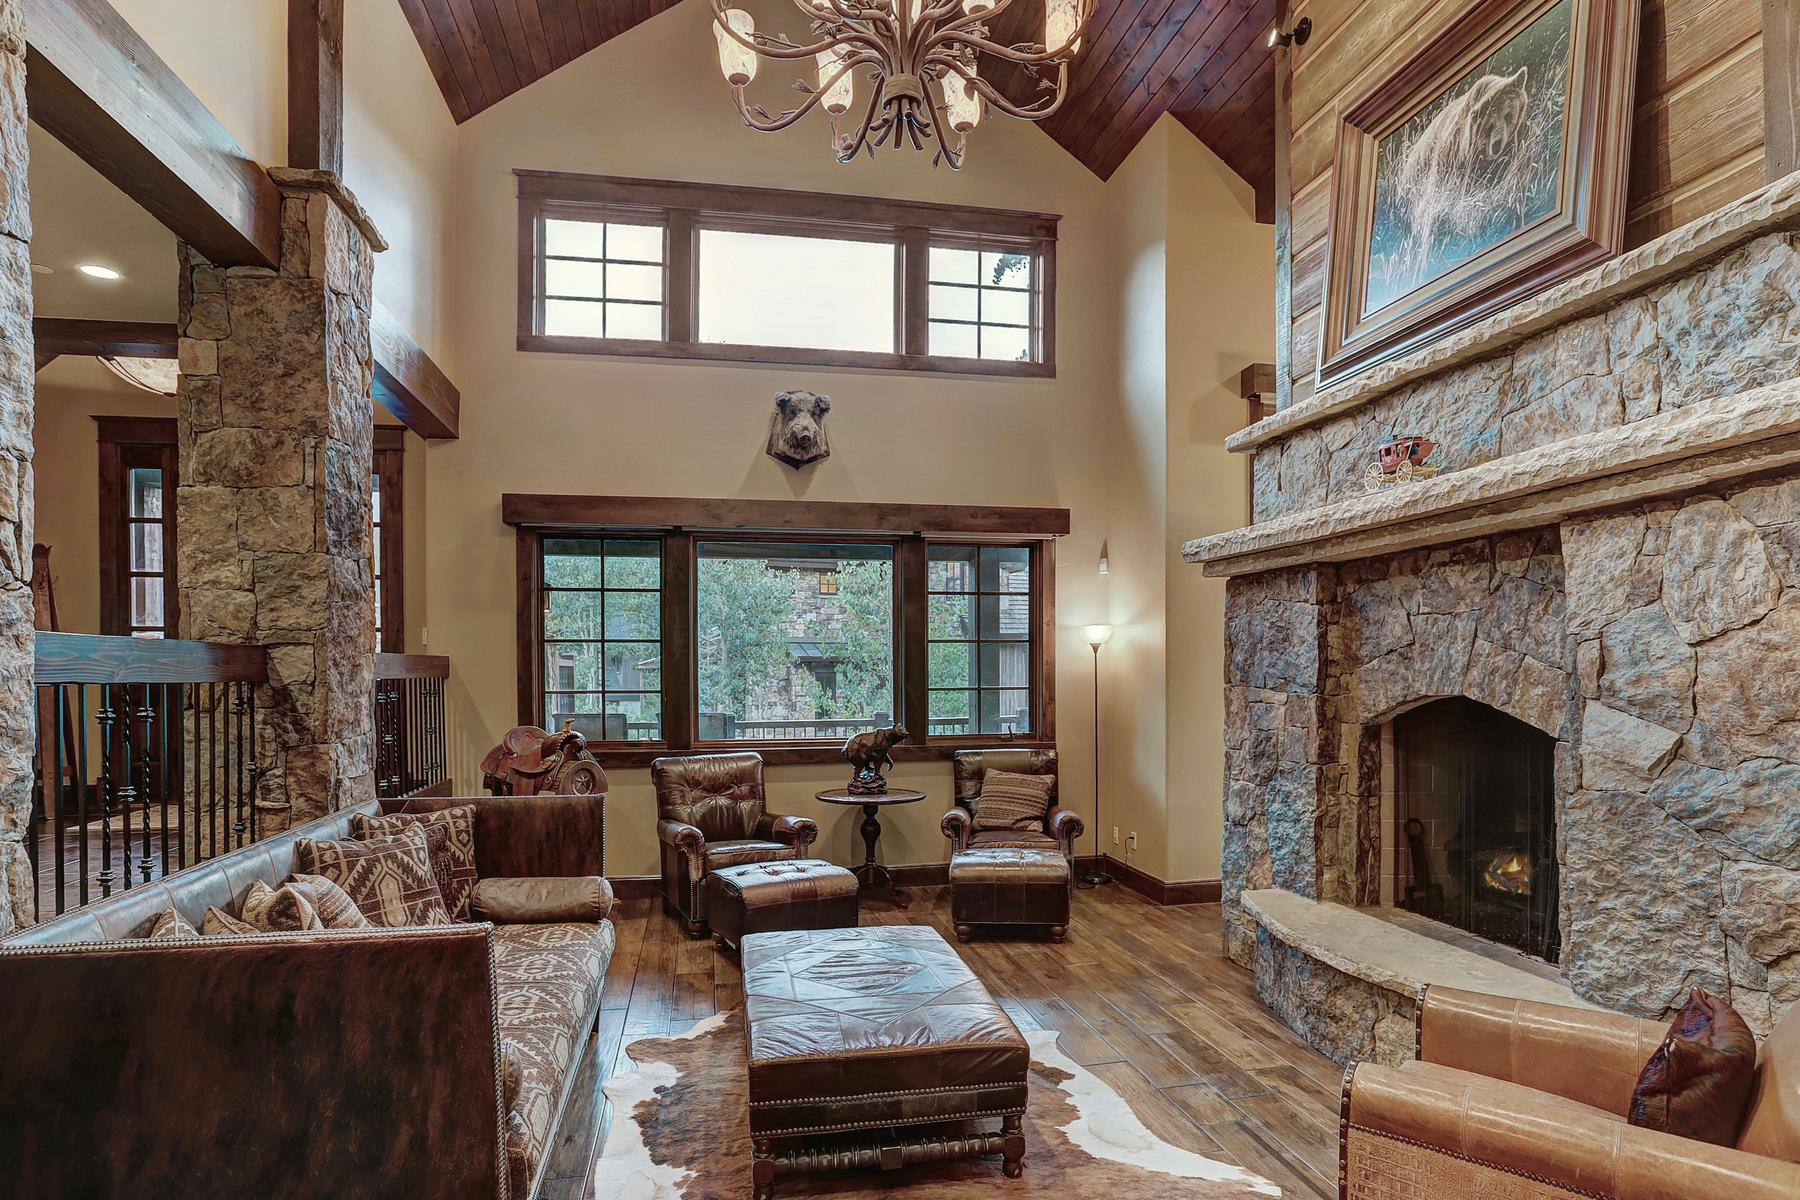 Property for Active at Glenwild Home 1296 Glenwild Drive Breckenridge, Colorado 80424 United States